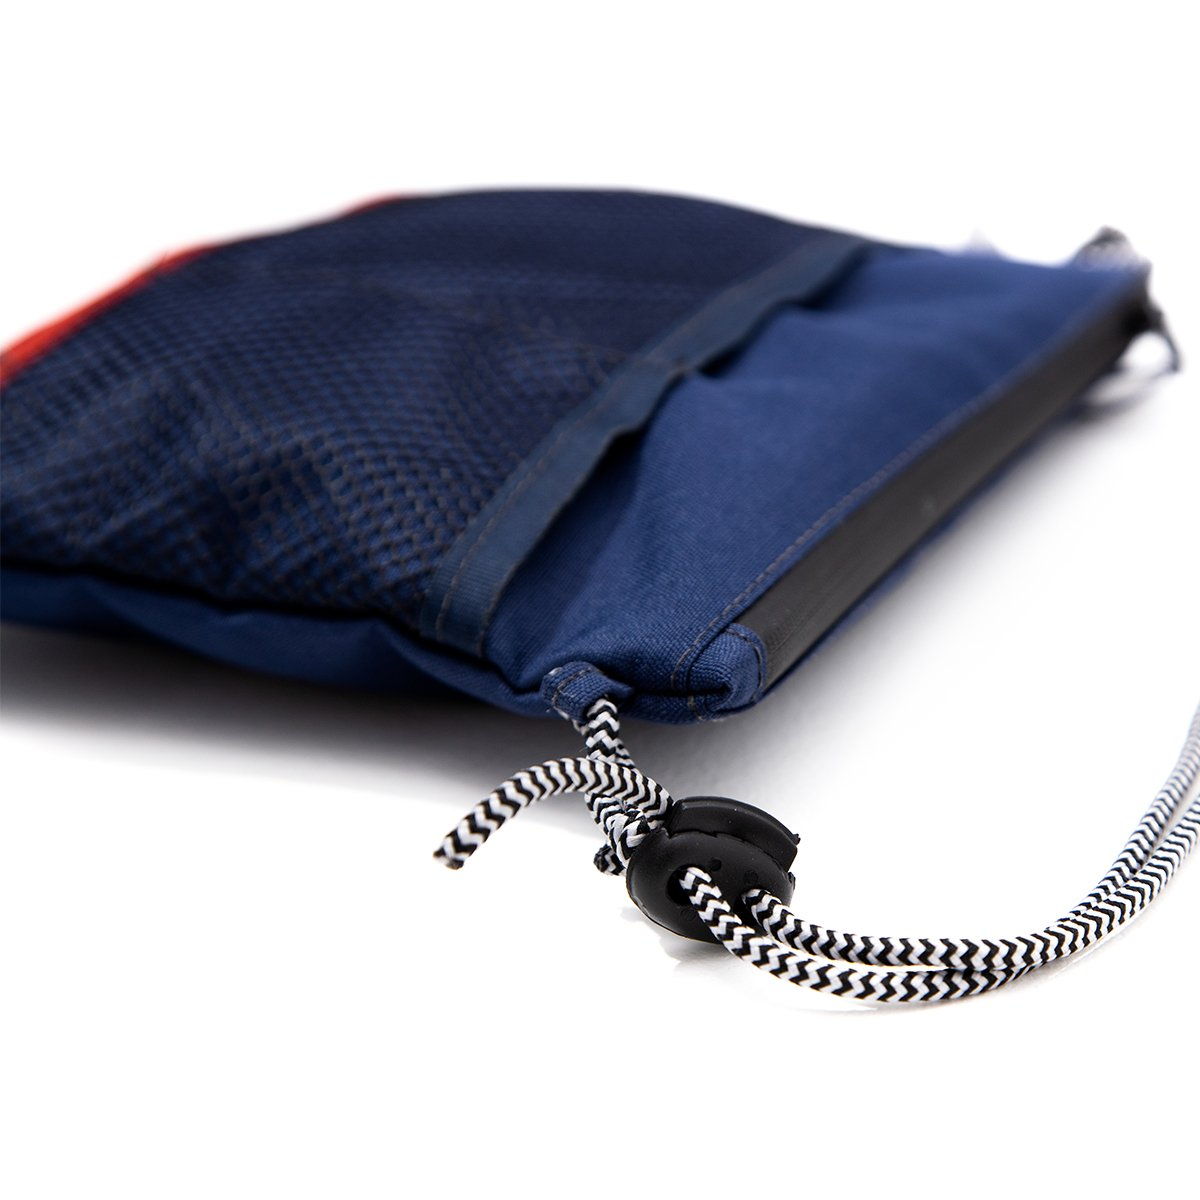 Shoulder Bag Hocks - Pocket 2